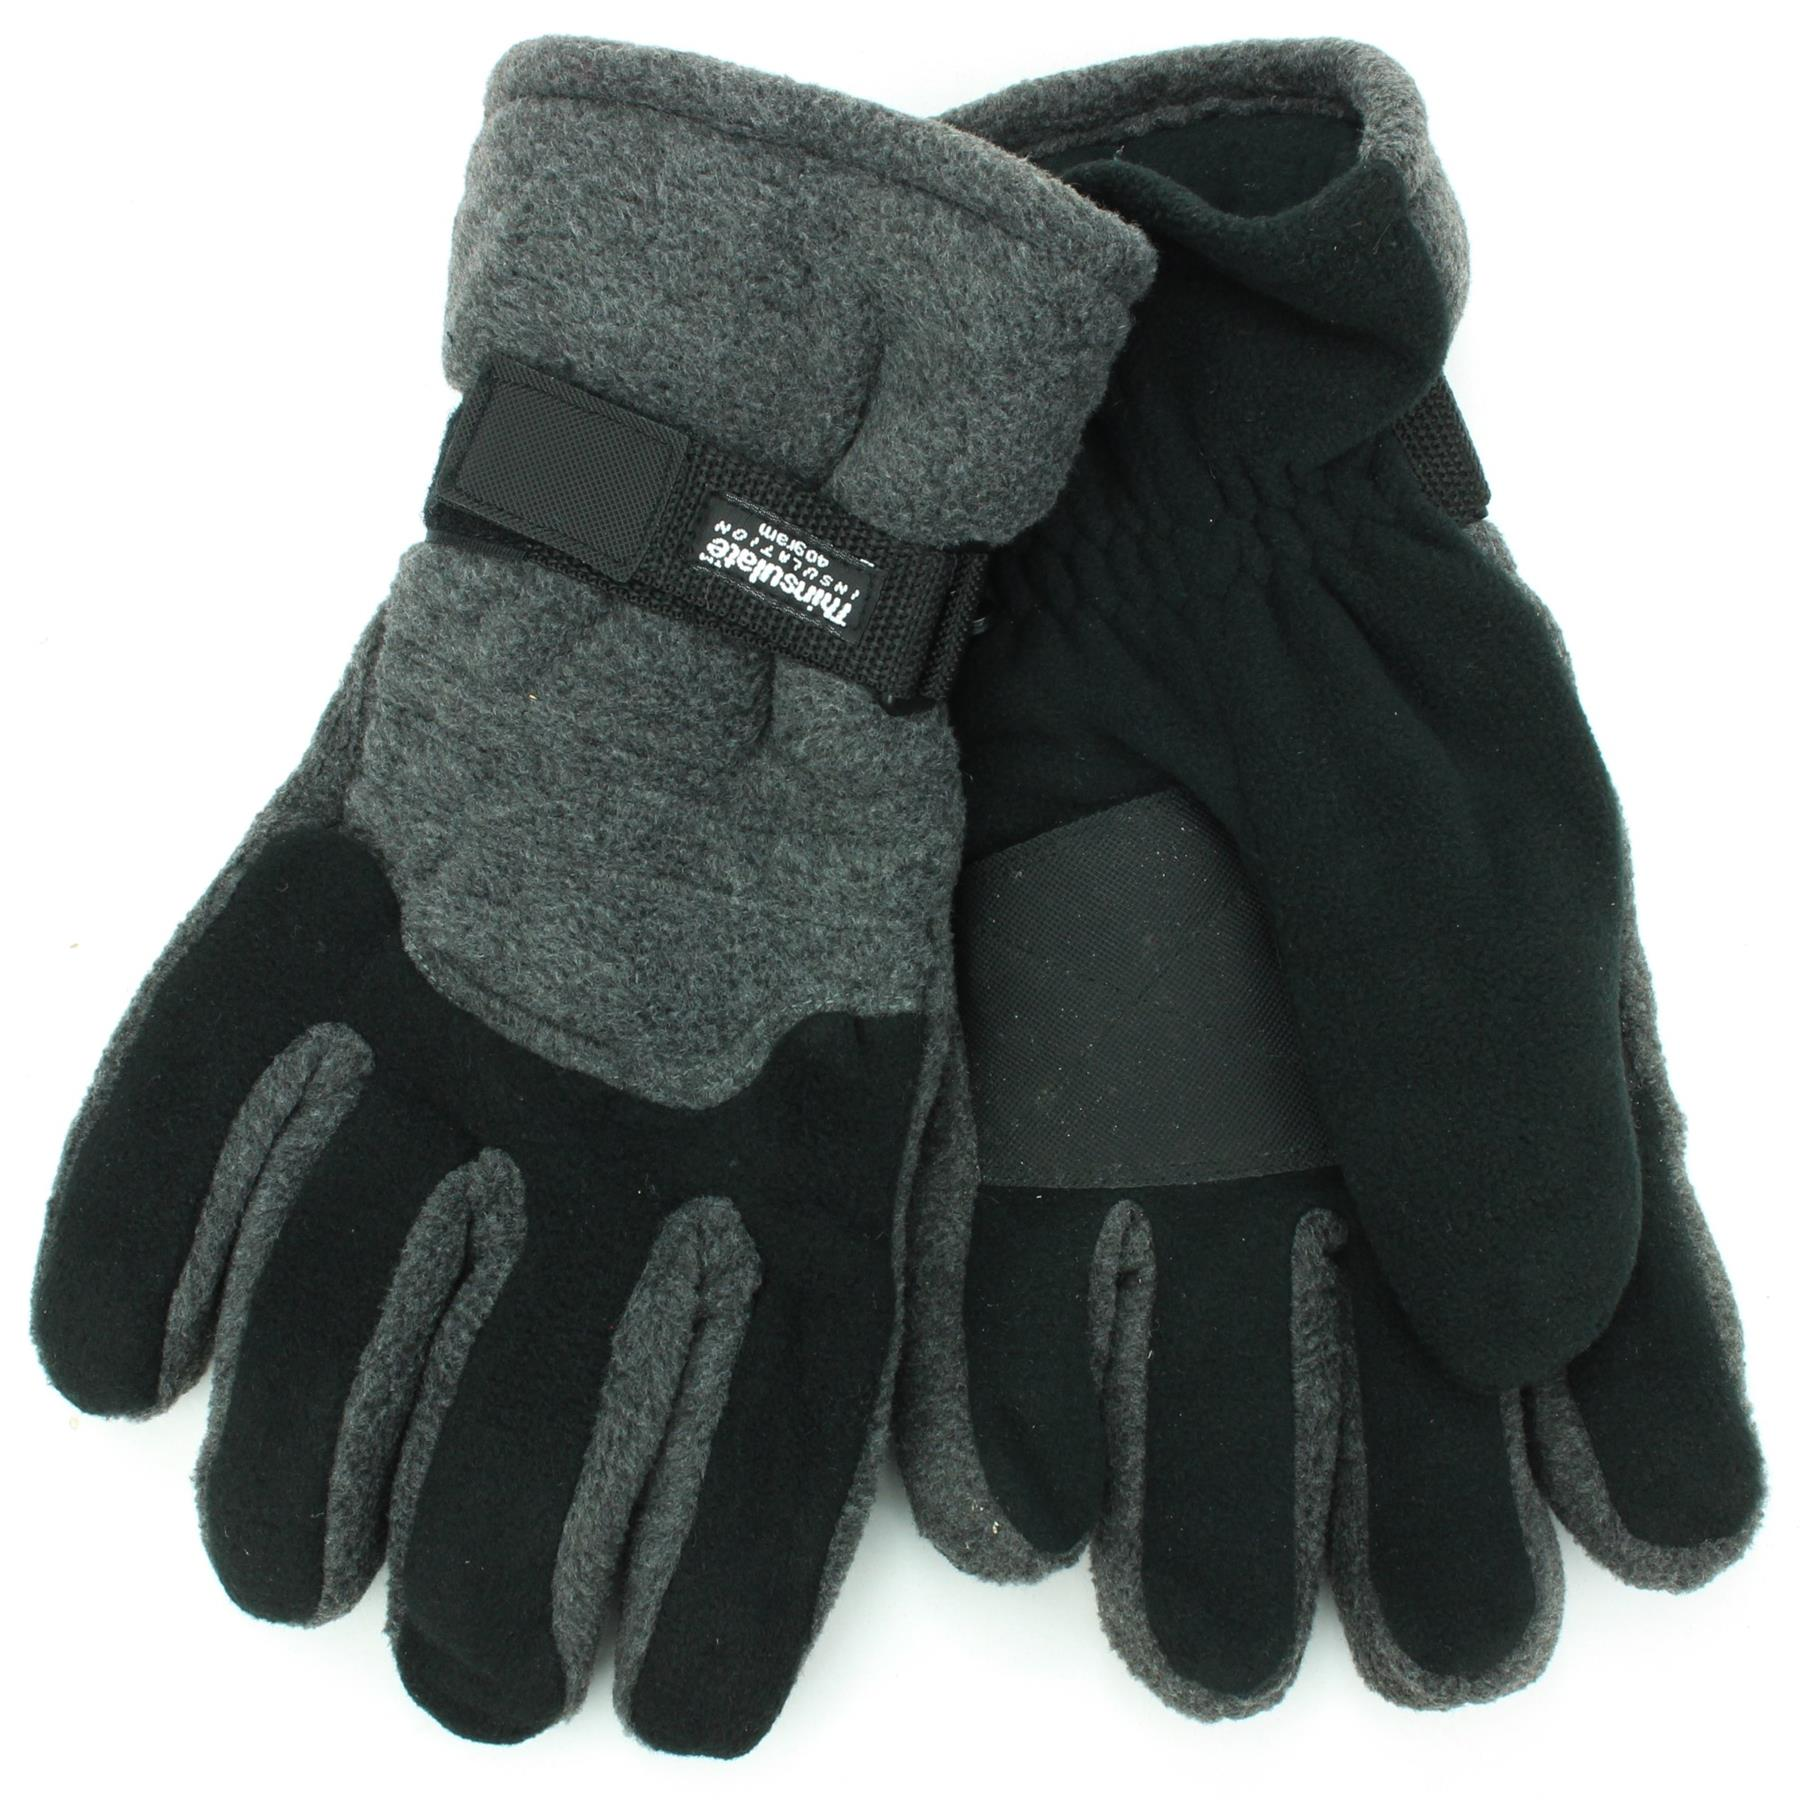 Mens Glove Thermal Winter Warm Fleece Lined Thinsulate Windproof Insulated Black